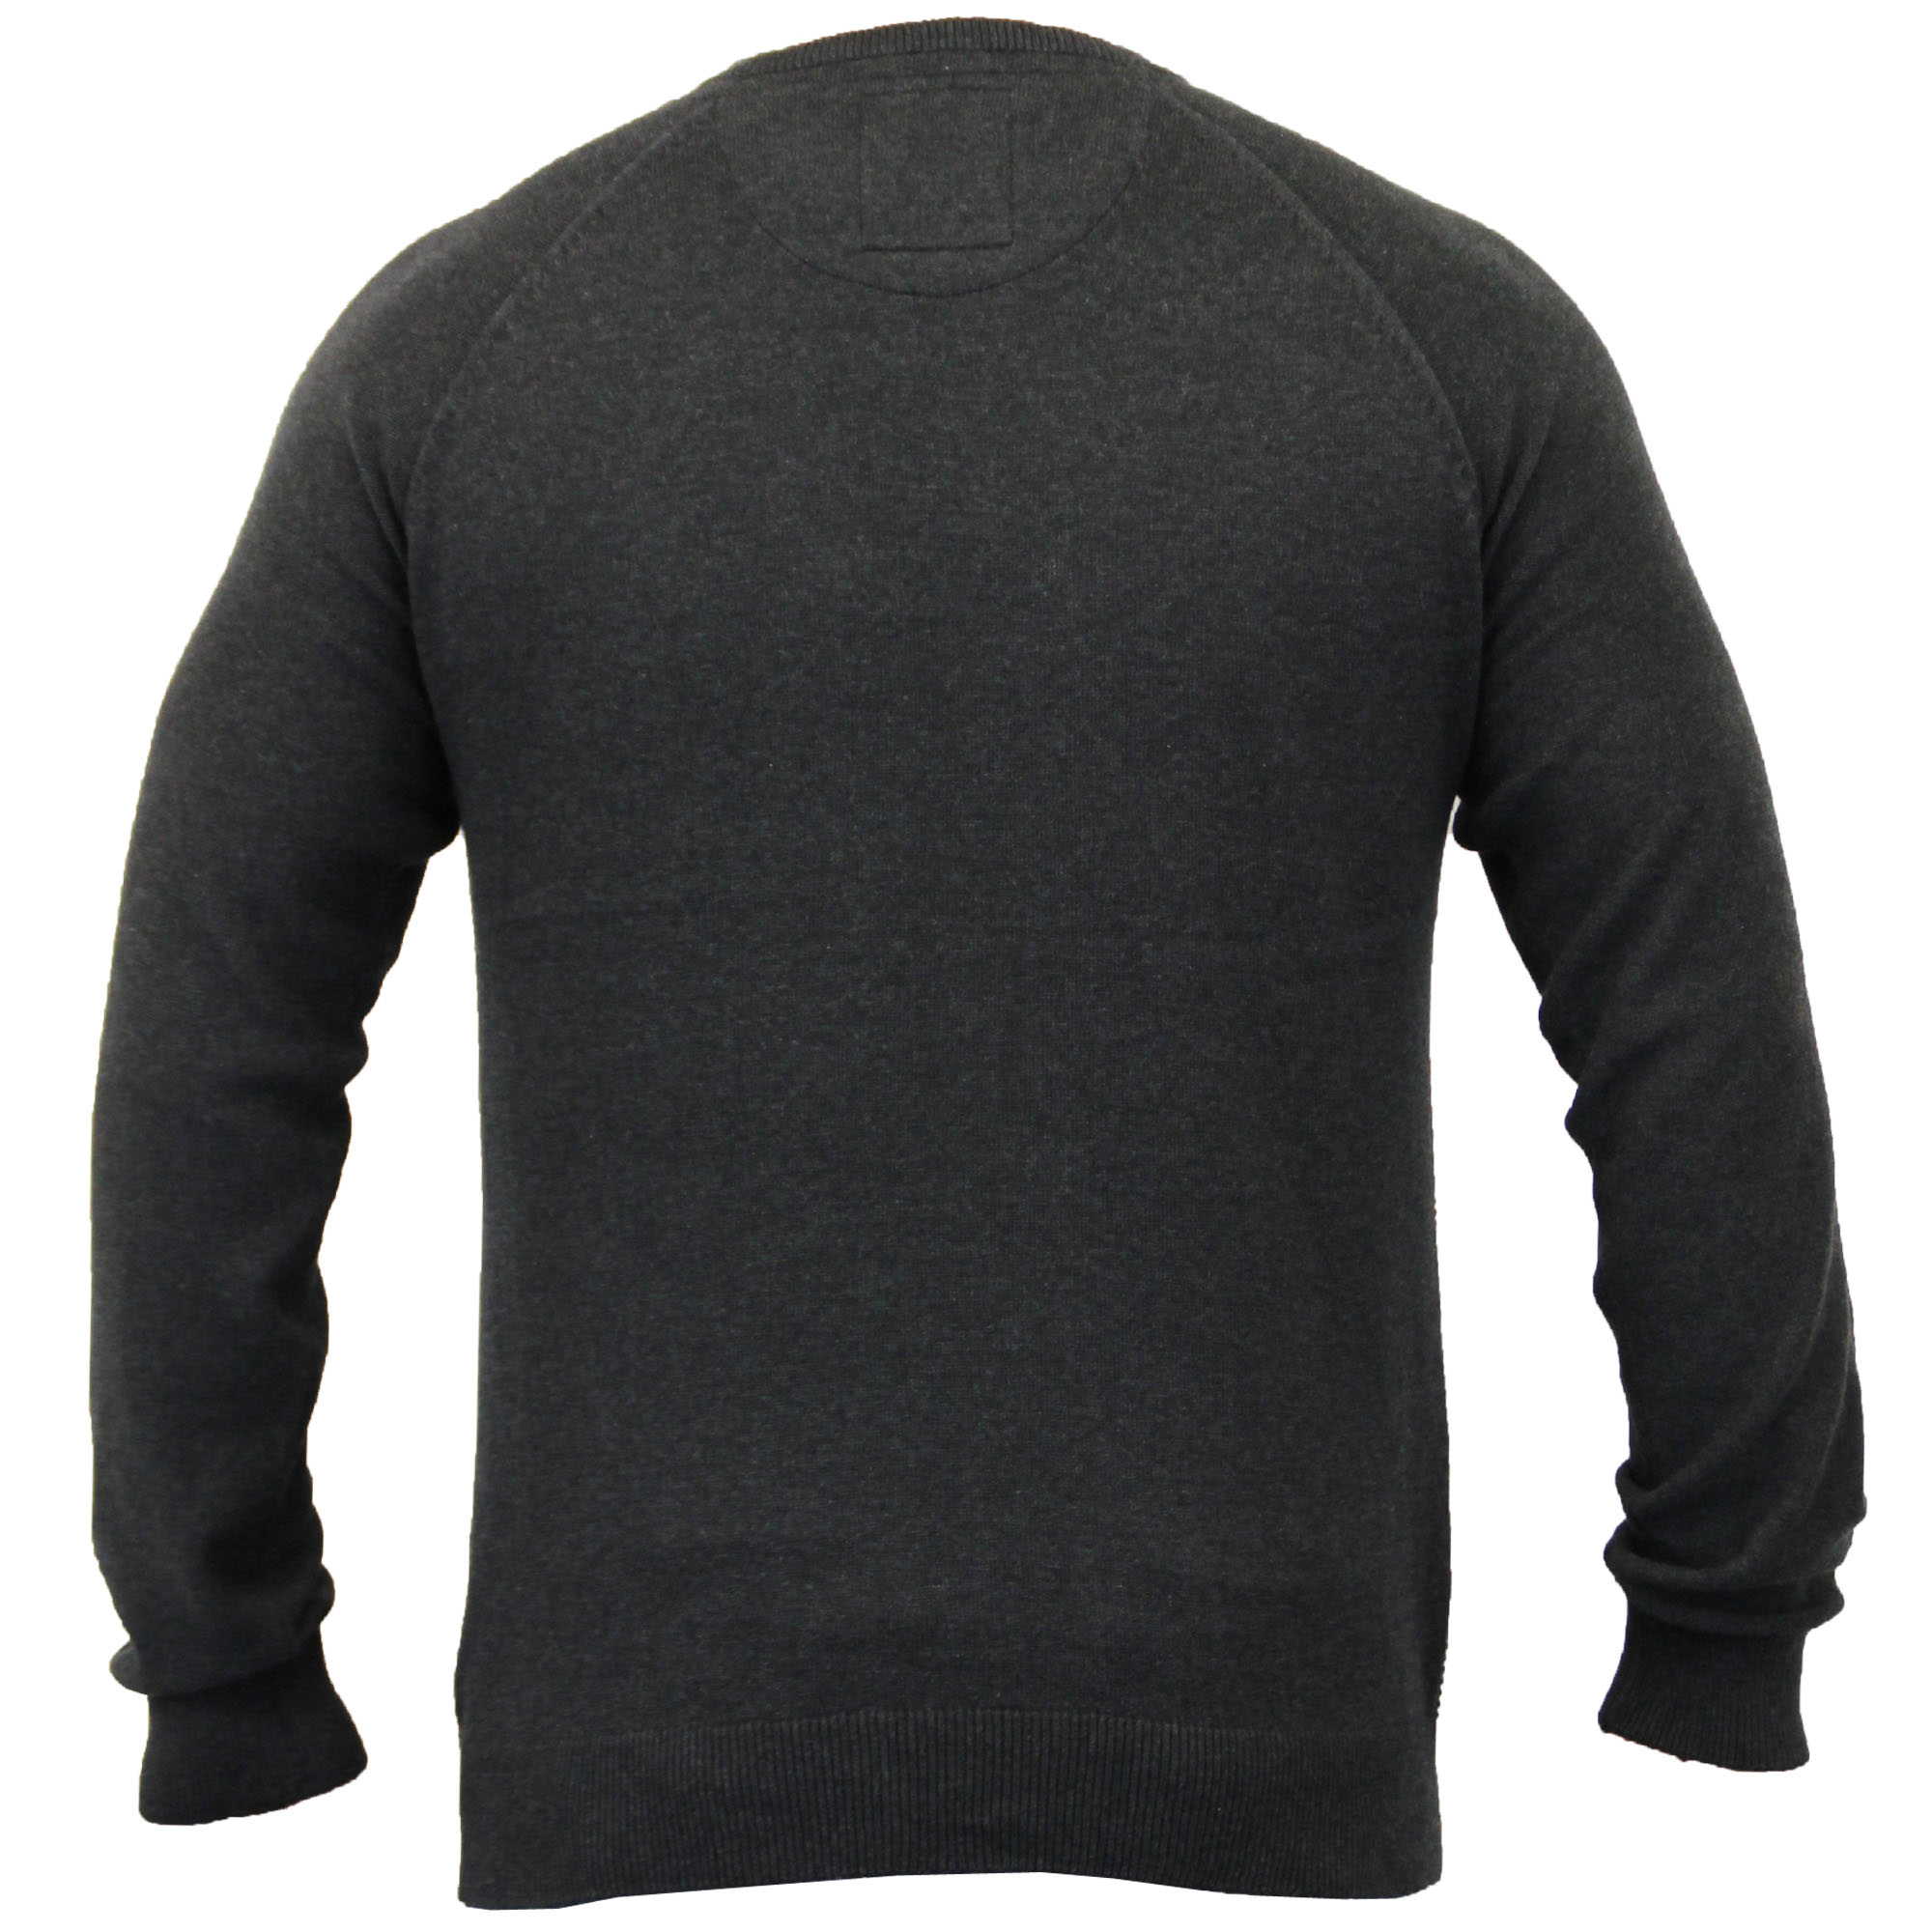 Mens-Jumper-Threadbare-Knitted-Chunky-Sweater-Top-Pullover-Crew-Neck-Winter-New thumbnail 7